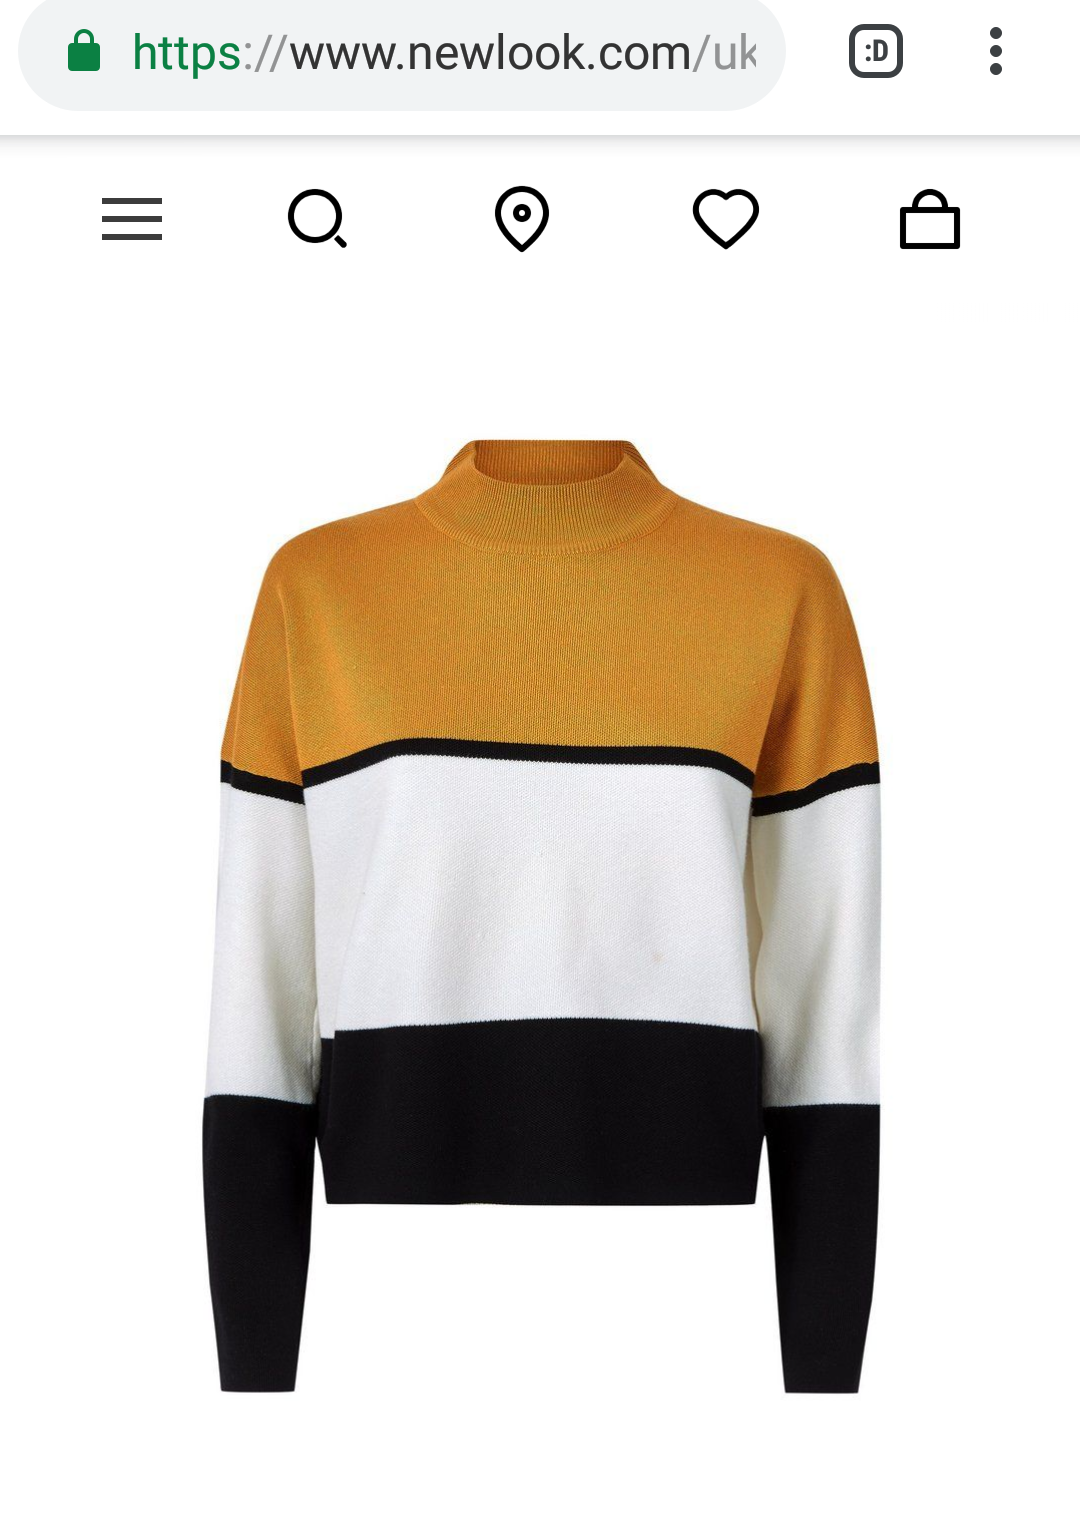 Bagging Striped Jumper with a solid block of colour in mustard yellow across shoulders and upper chest, the rest of the jumper is thick block white and black stripss